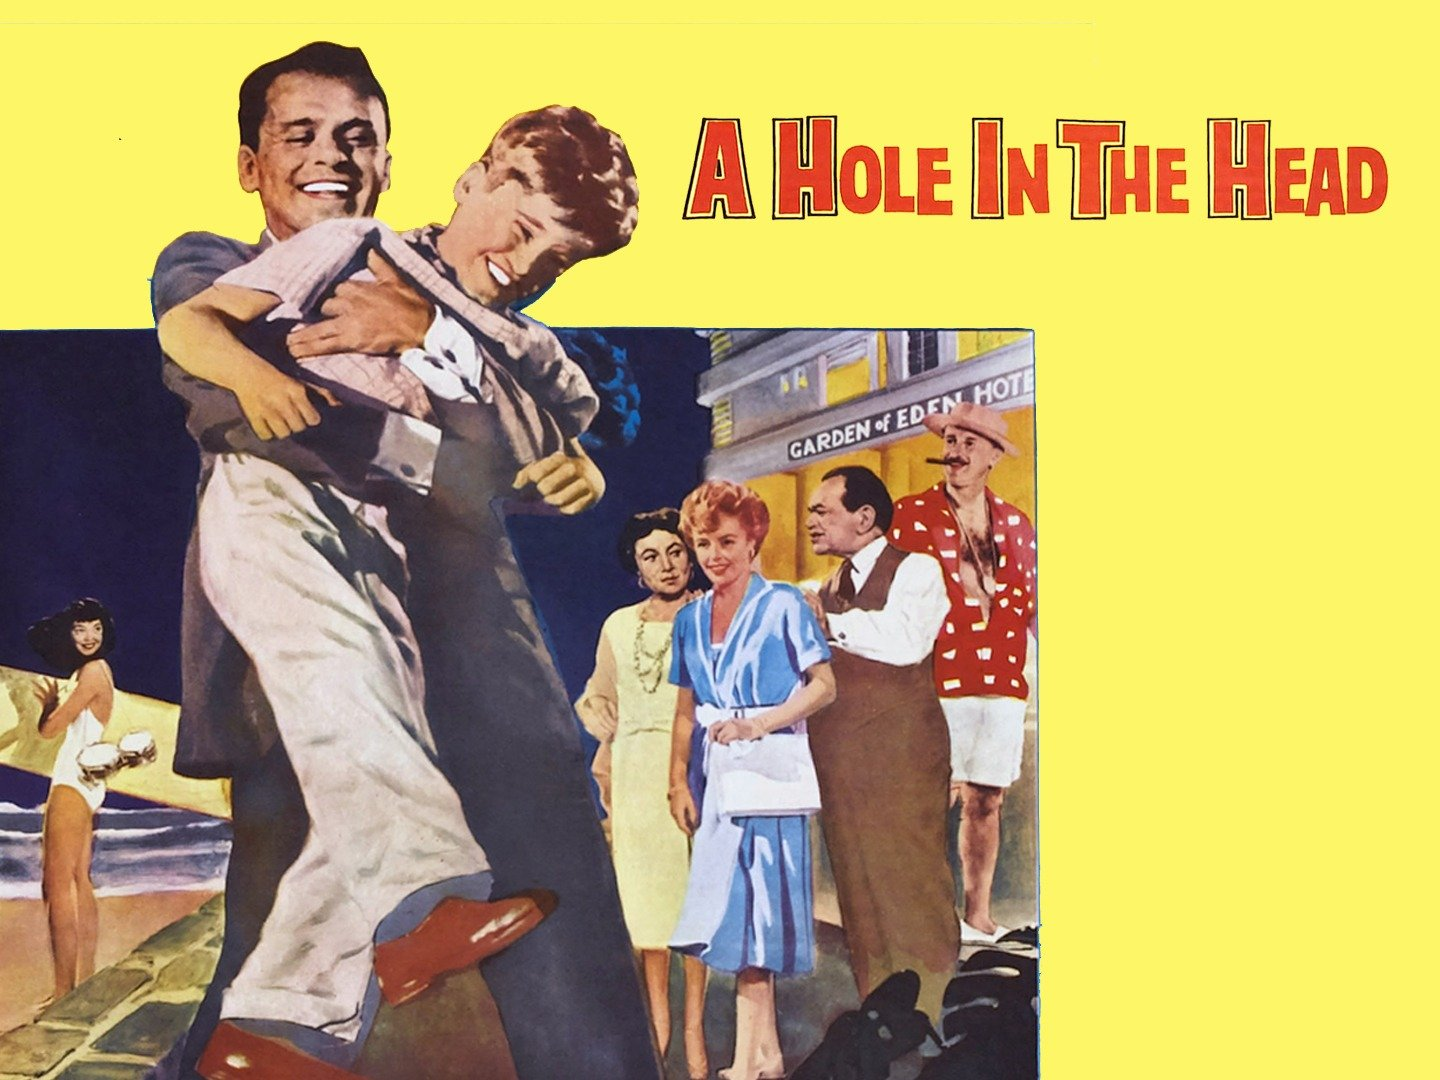 A Hole in the Head (1959) – Comedy, Drama